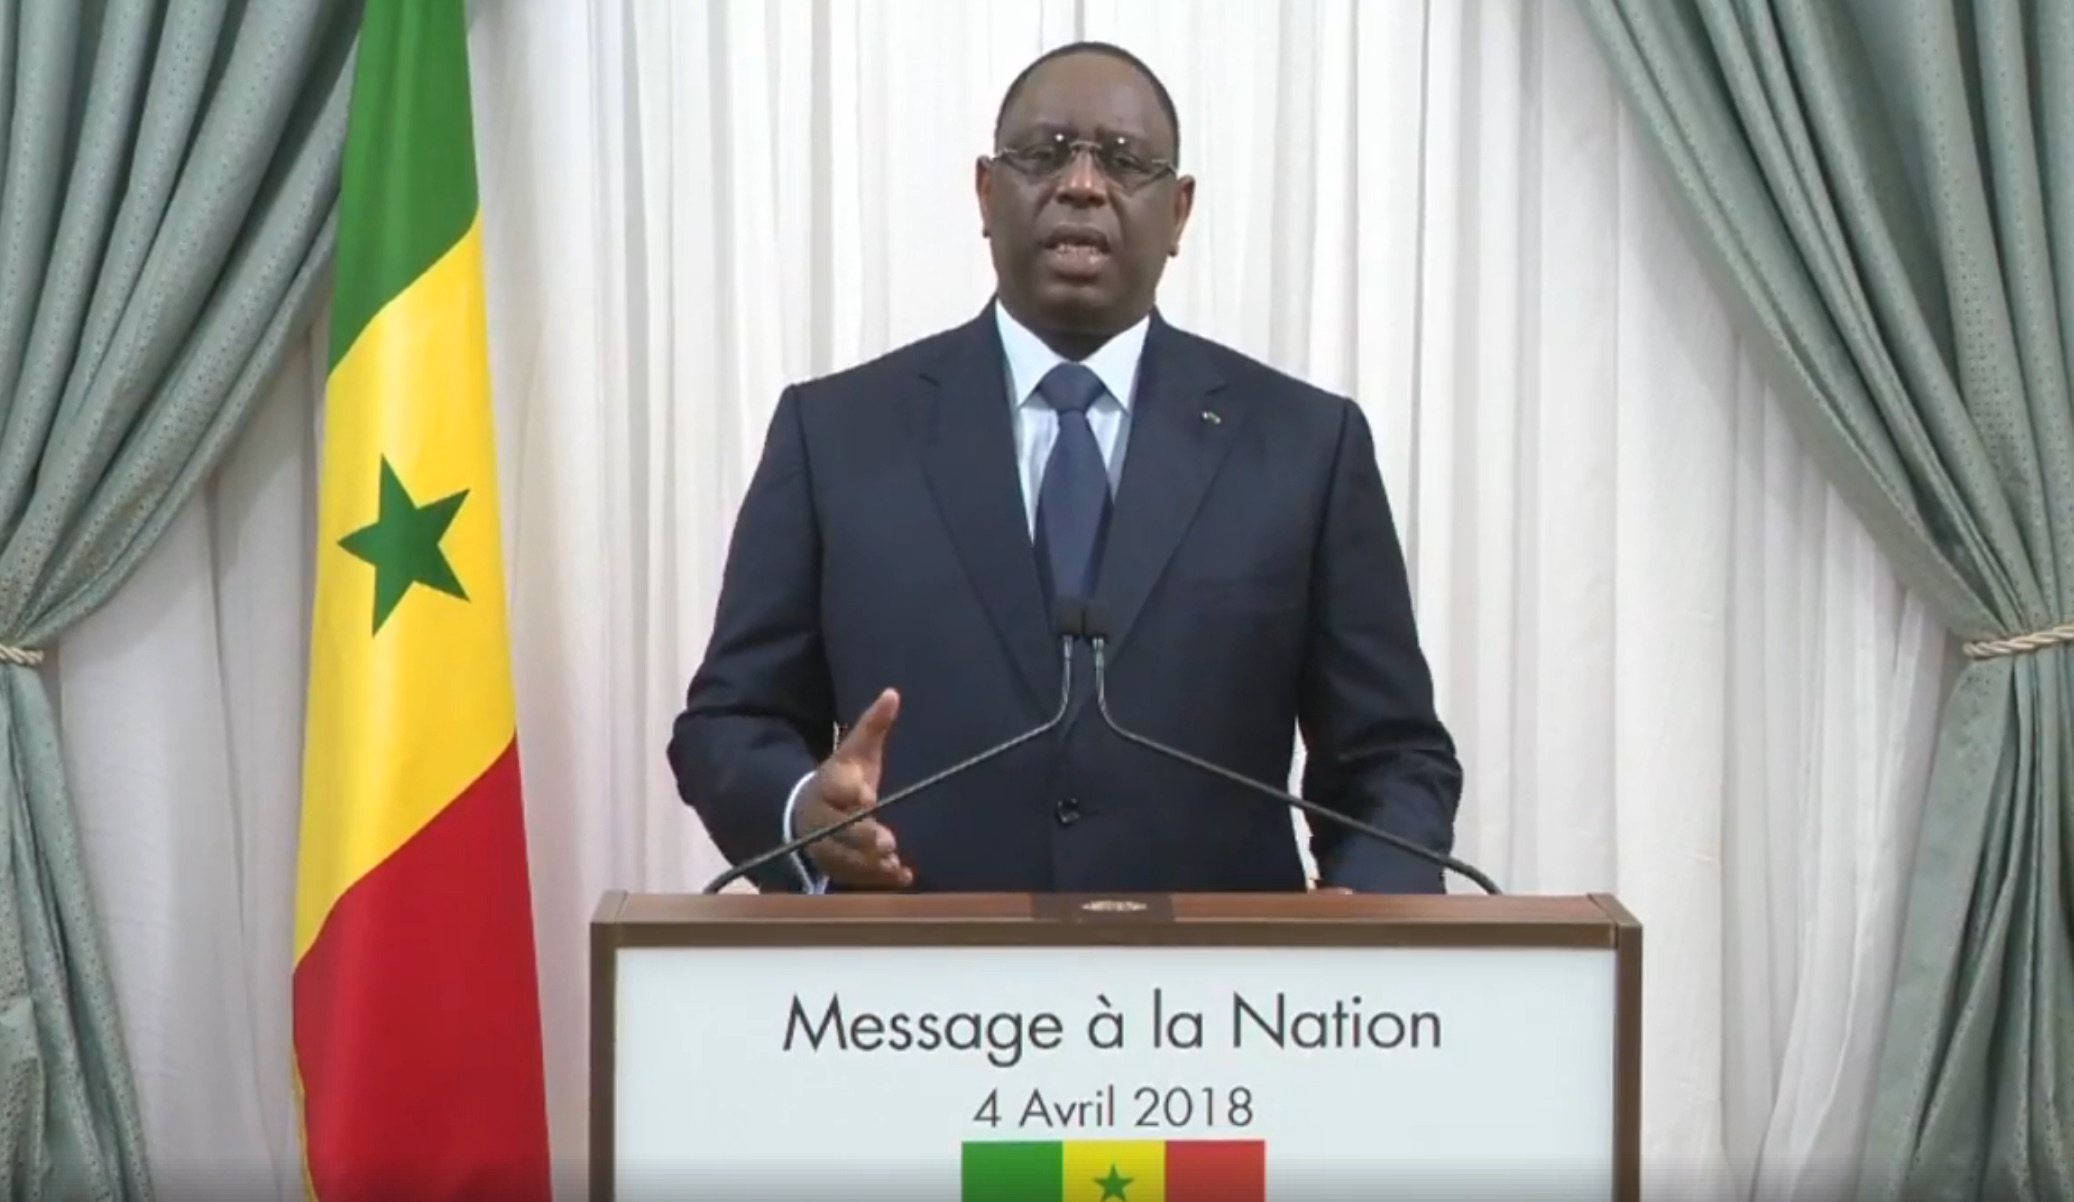 Commissariat, discours, gendarmes, Macky Sall, Nation